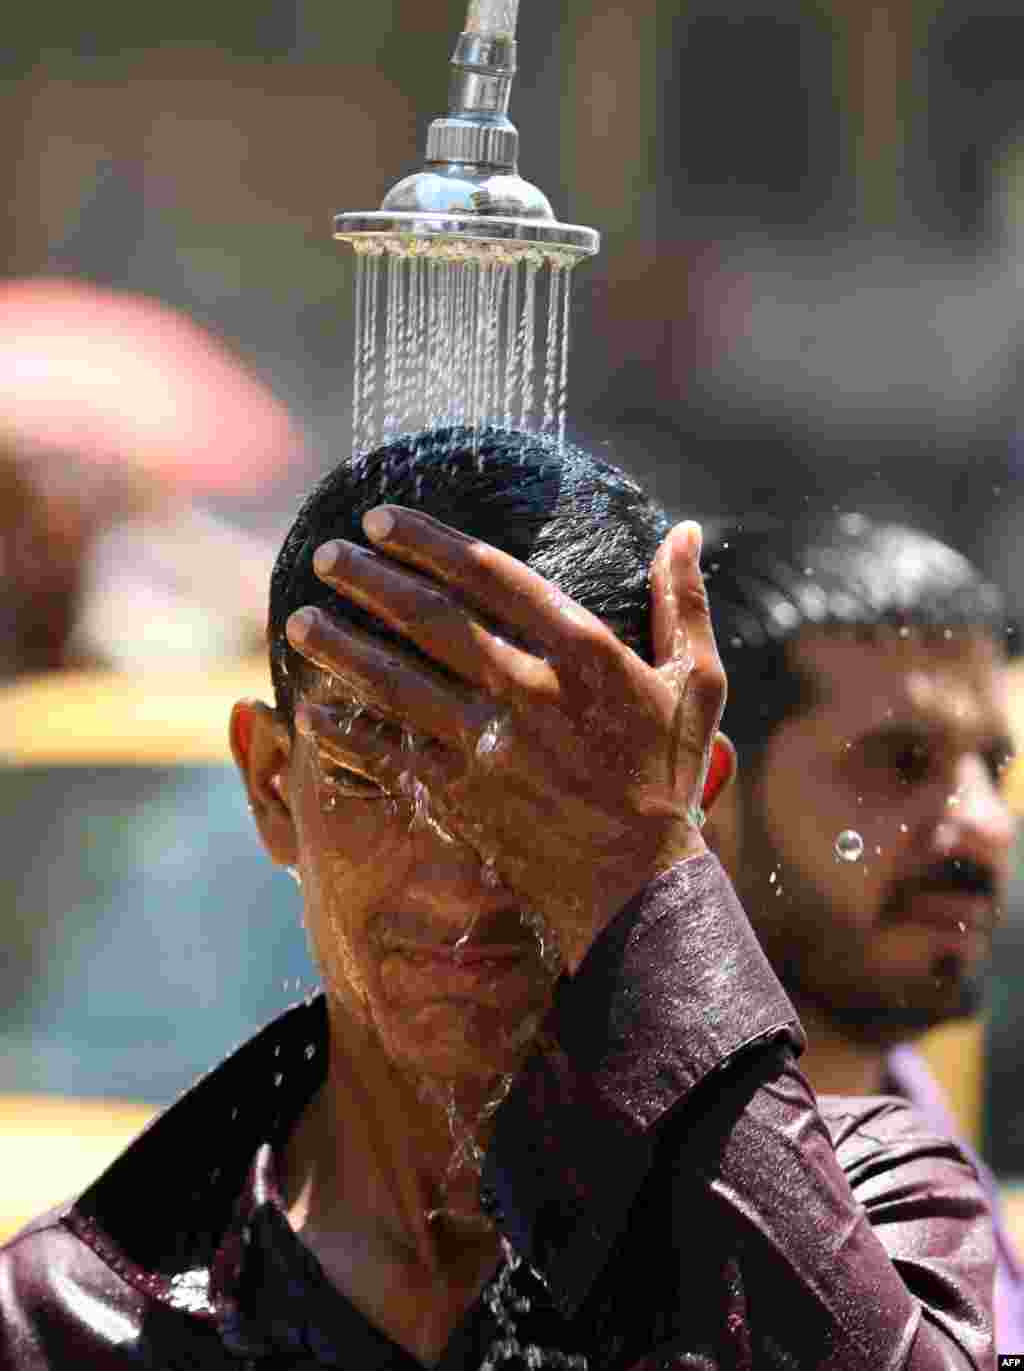 An Iraqi man tries to cool off as temperatures reached 48 degrees Celsius in Baghdad on July 26. (AFP/Ahmad al-Rubaye)